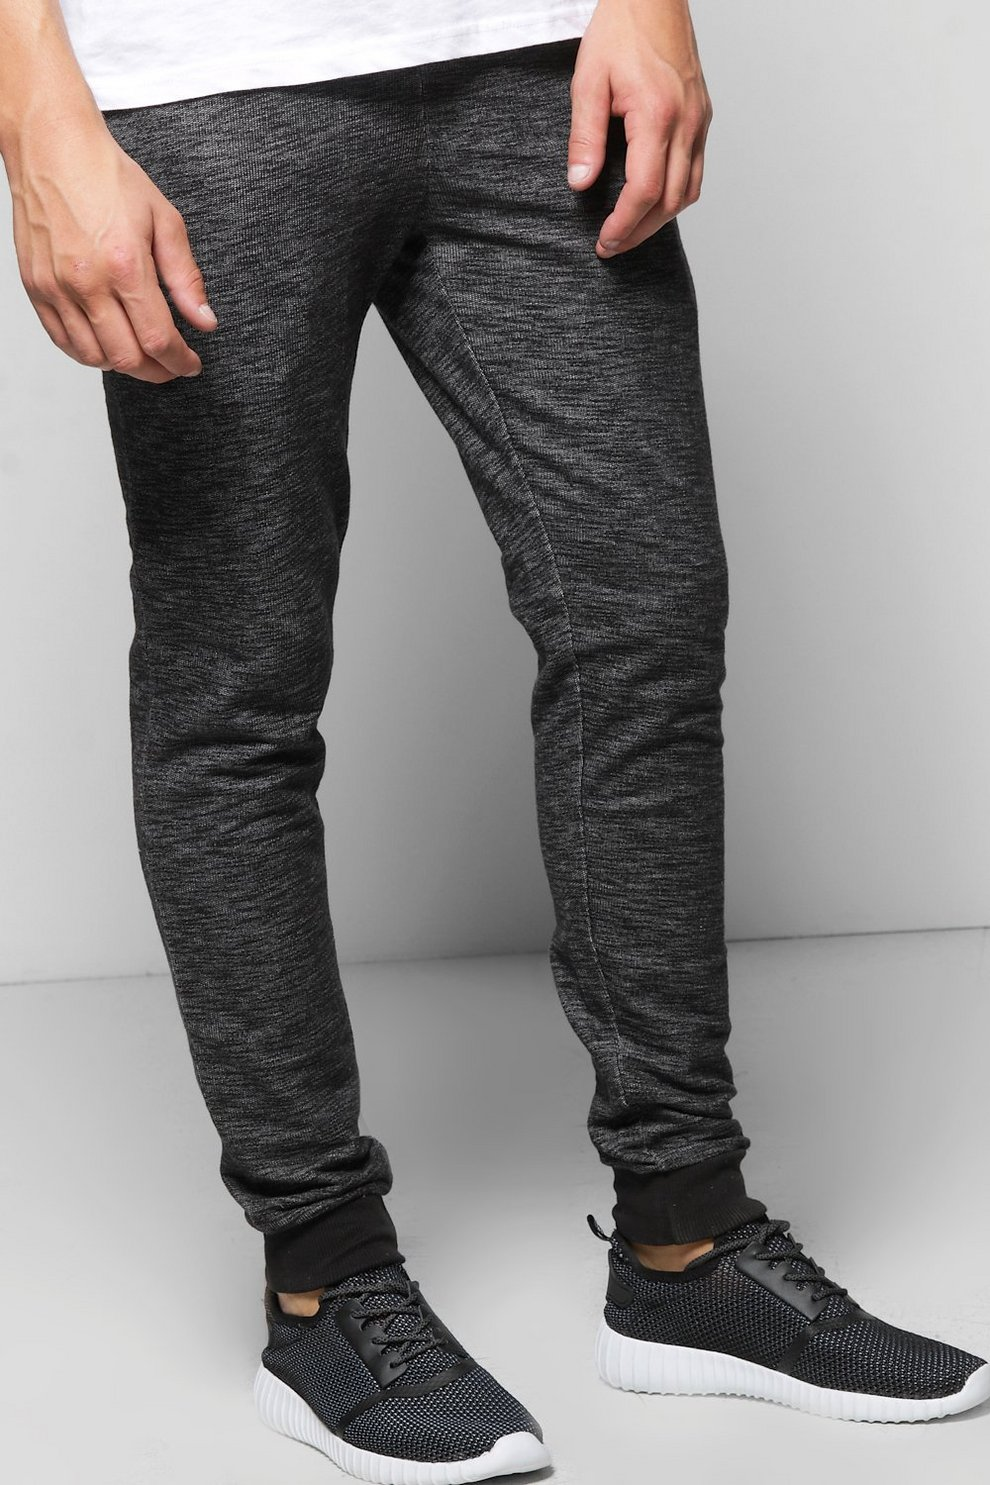 2c2ebccc9c768d Mens Black Space Dye Skinny Joggers. Hover to zoom